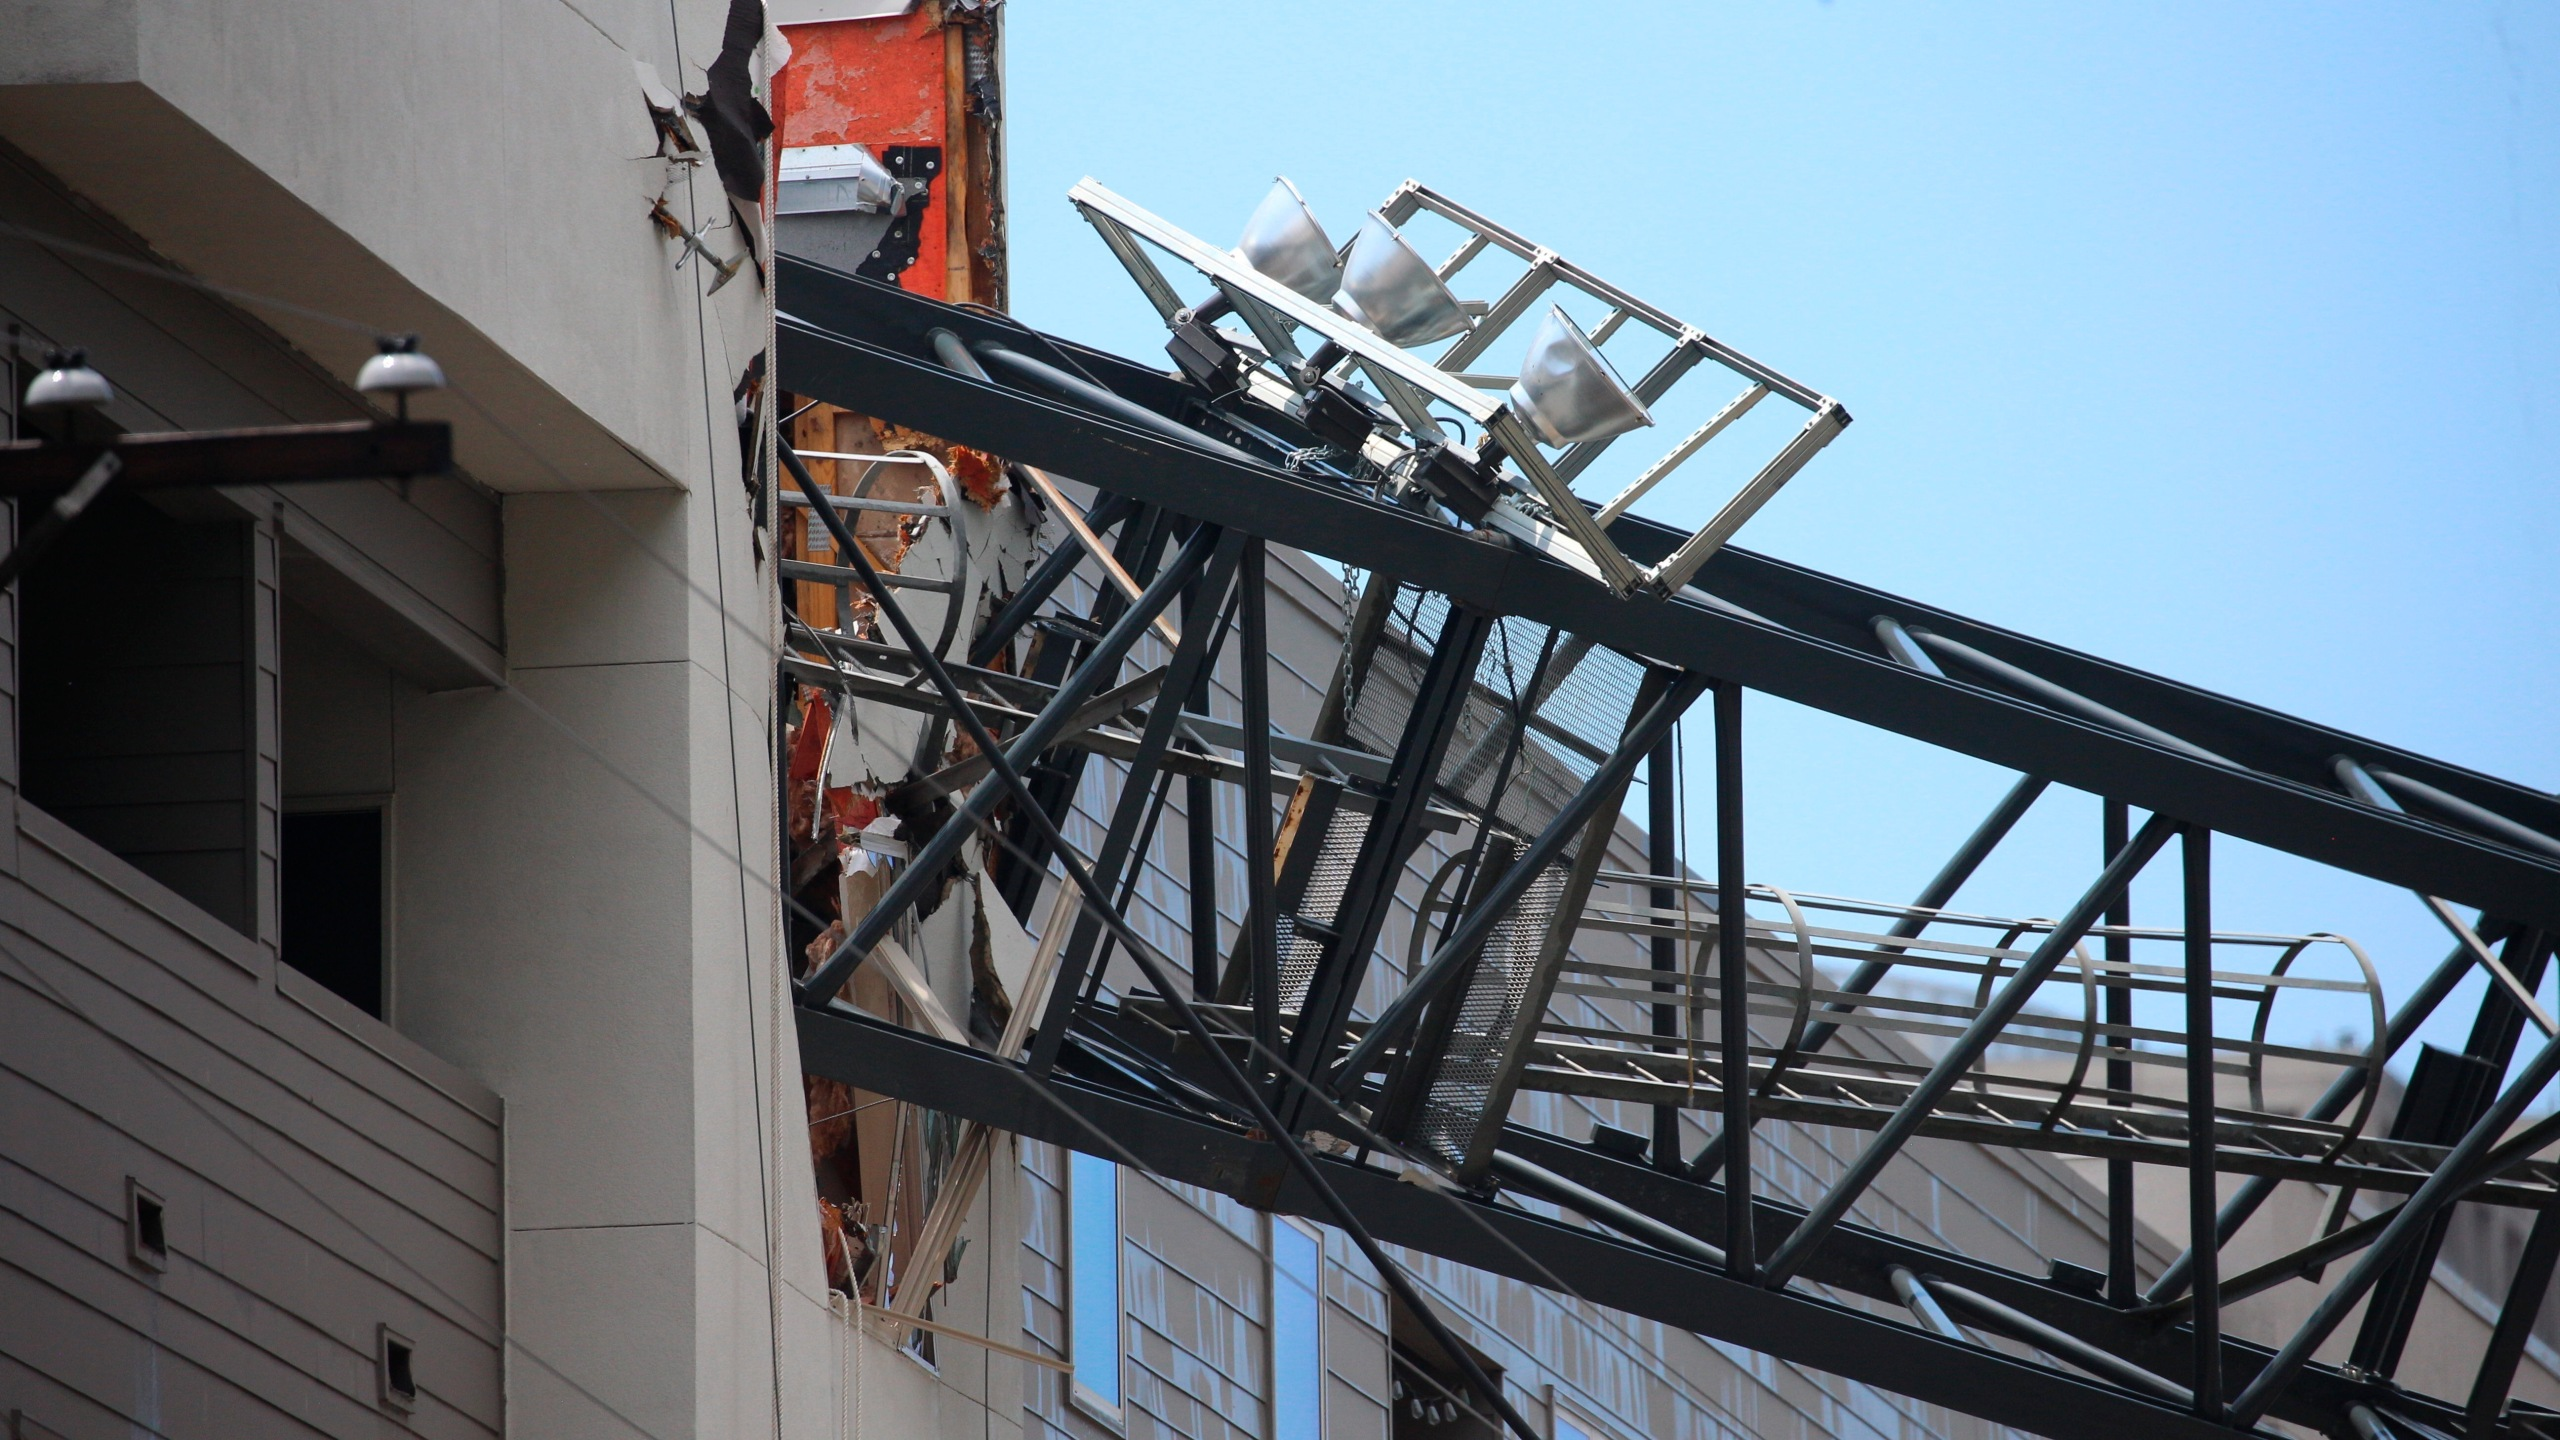 Crane_Collapse_Texas_53443-159532.jpg56385485